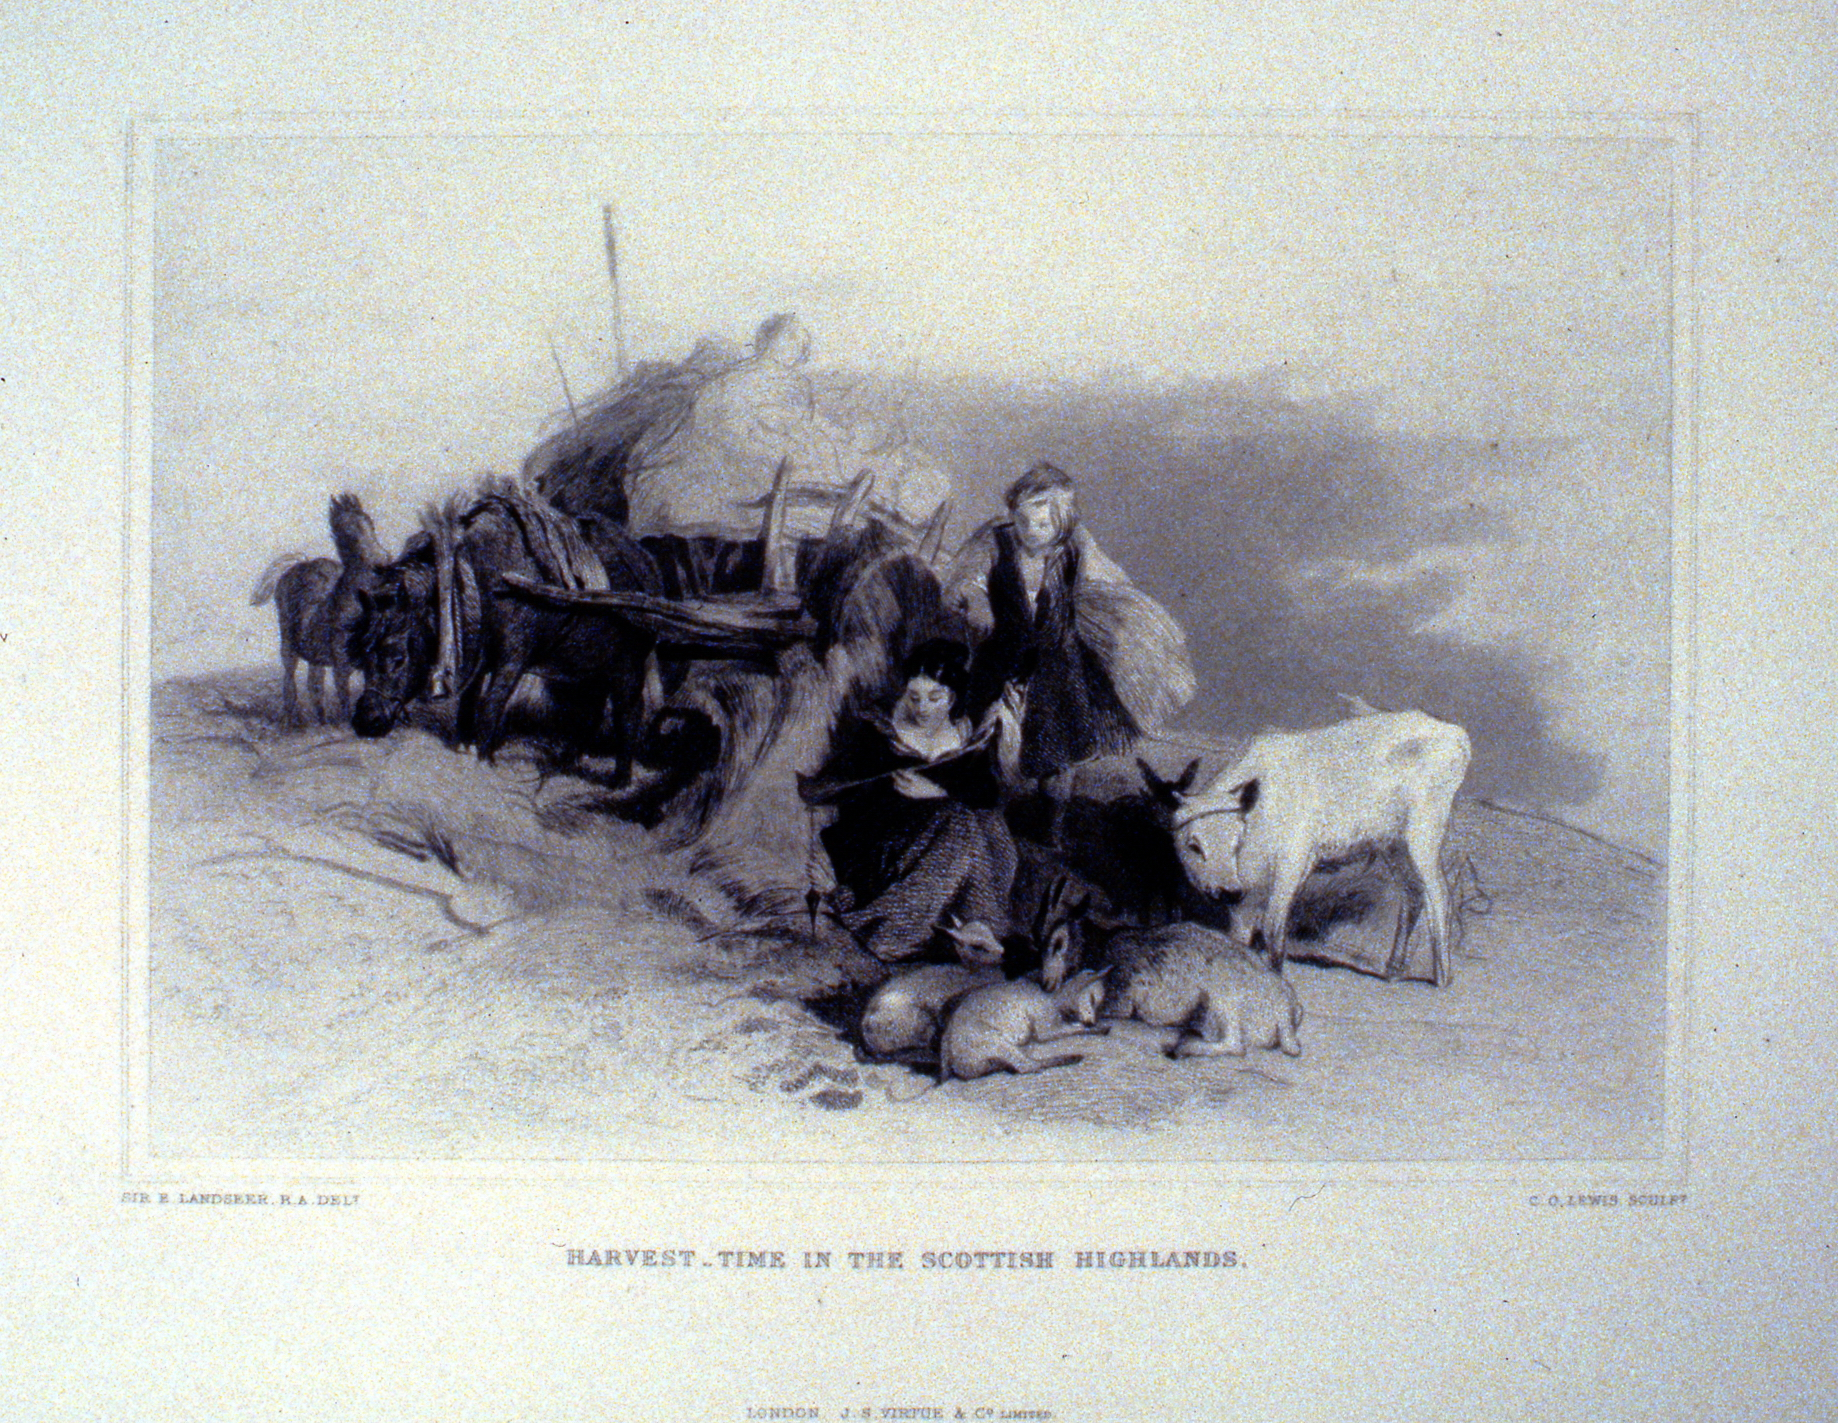 Harvest Time in the Scottish Highlands , c. late 19th Century, Charles G. Lewis, steel engraving, 17.2 cm x 25.2 cm, 1996.08.28, gift of Yvonne Adams